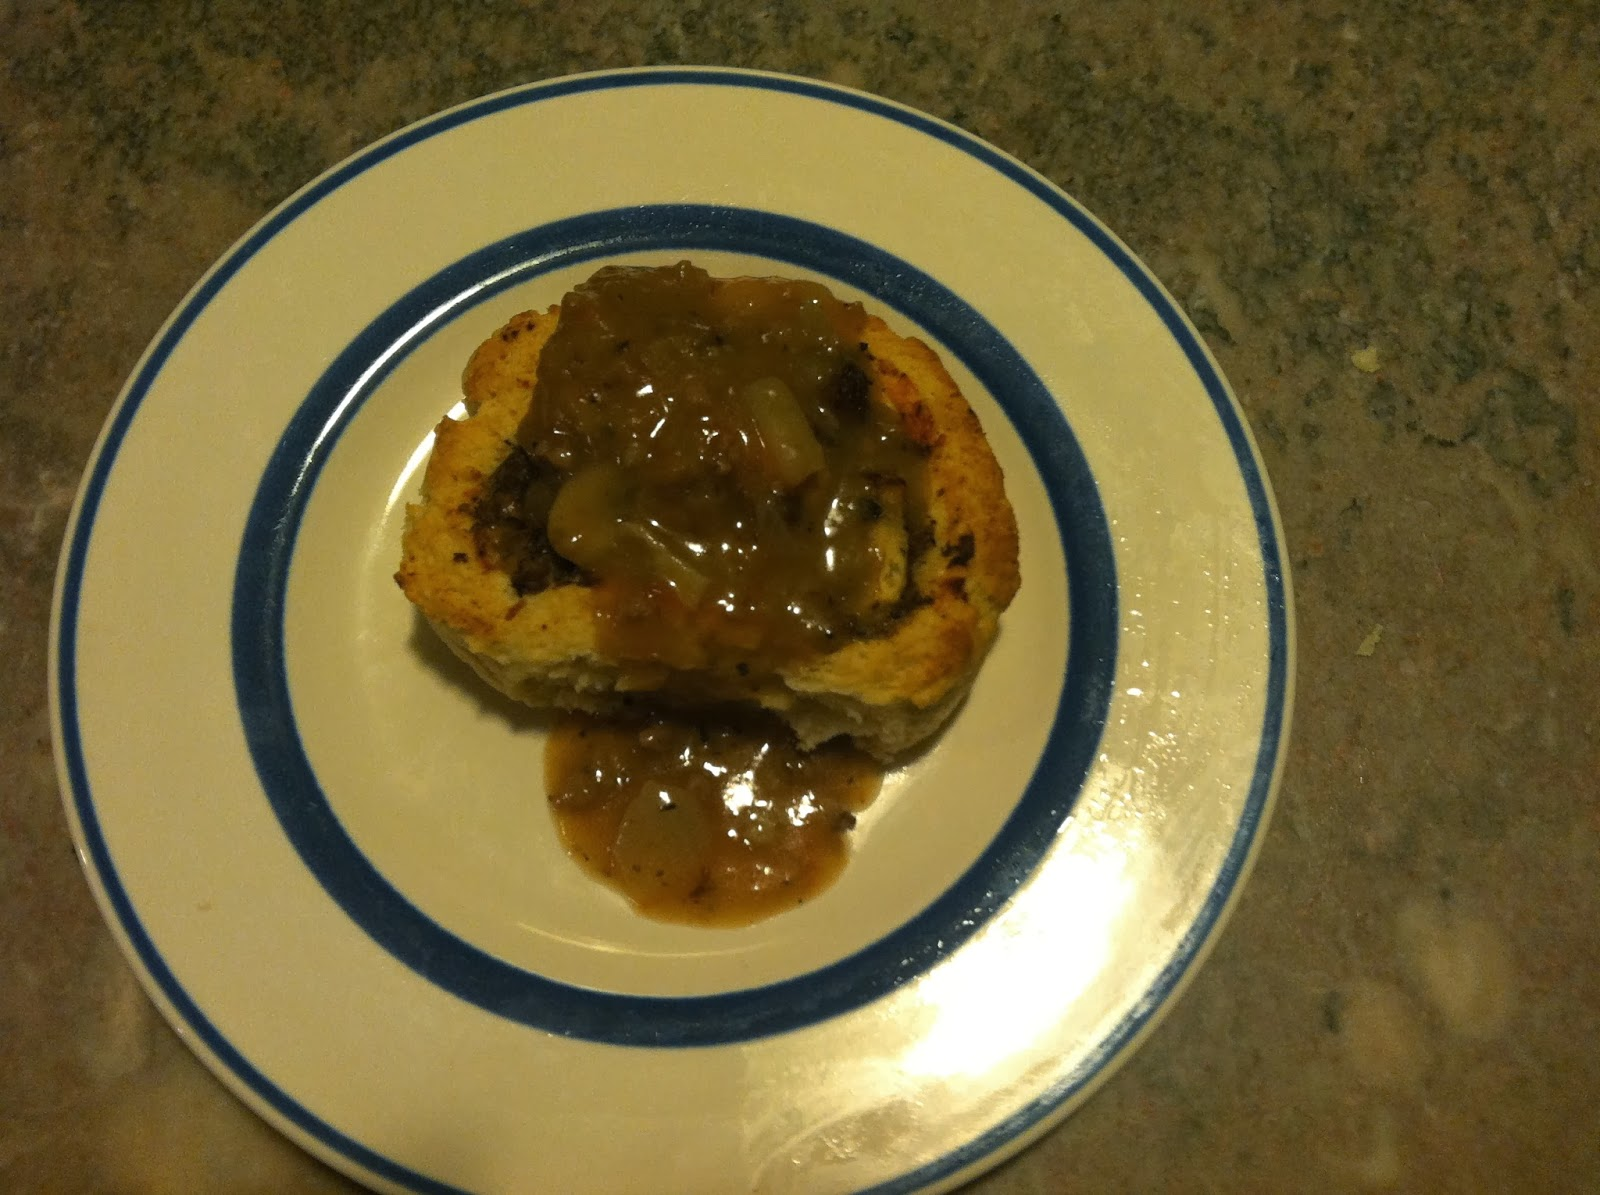 meat rolls . . . biscuit dough filled with meat & cheese and topped with a meat gravy